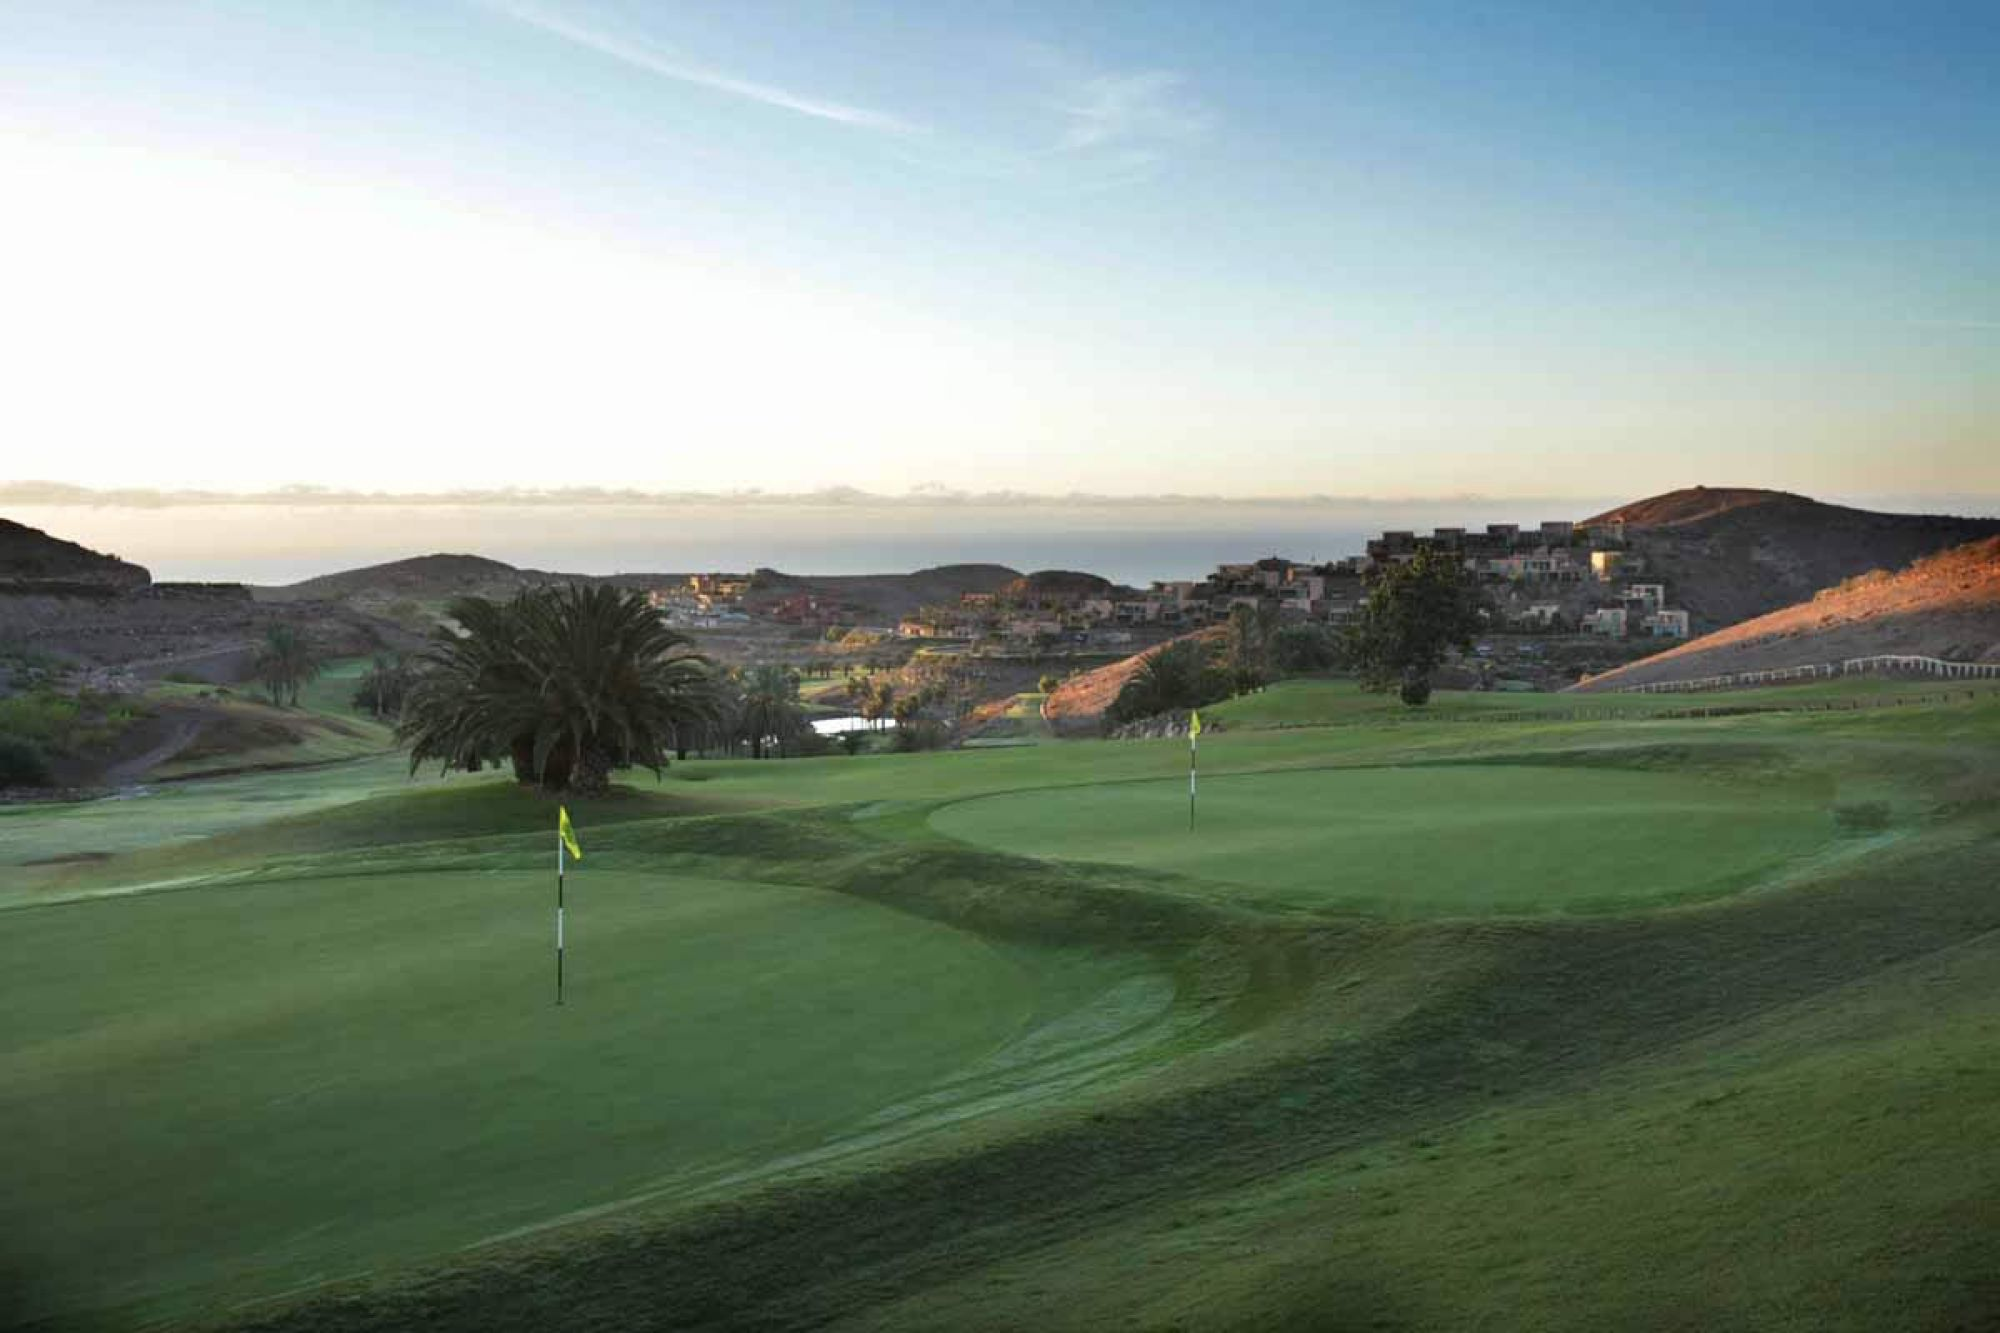 All The Salobre Golf Course Old's beautiful golf course situated in vibrant Gran Canaria.